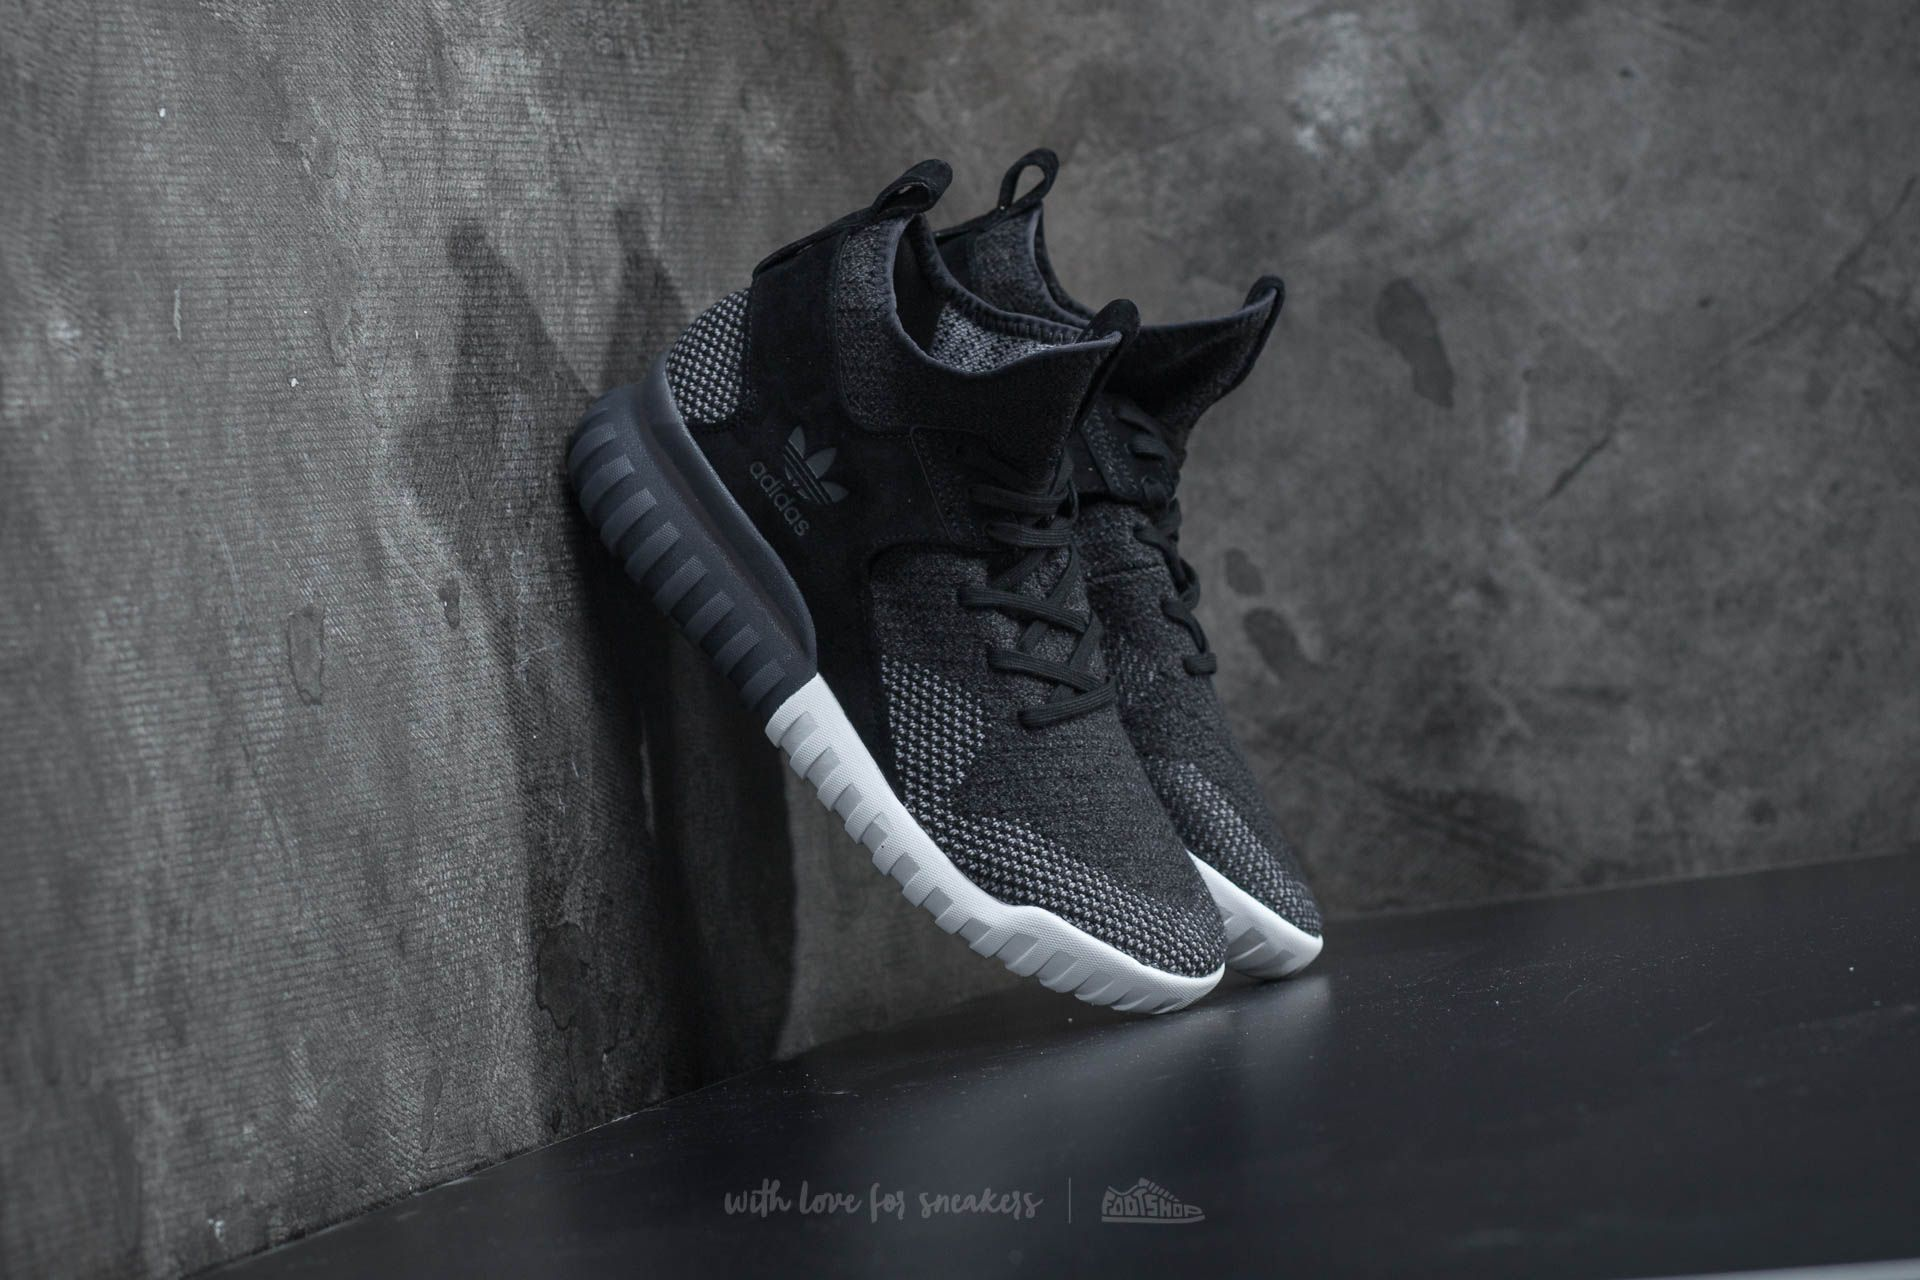 sports shoes b9dfe 90d57 ... where to buy adidas tubular x primeknit core black dark grey charcoal solid  grey 13218 34d4a